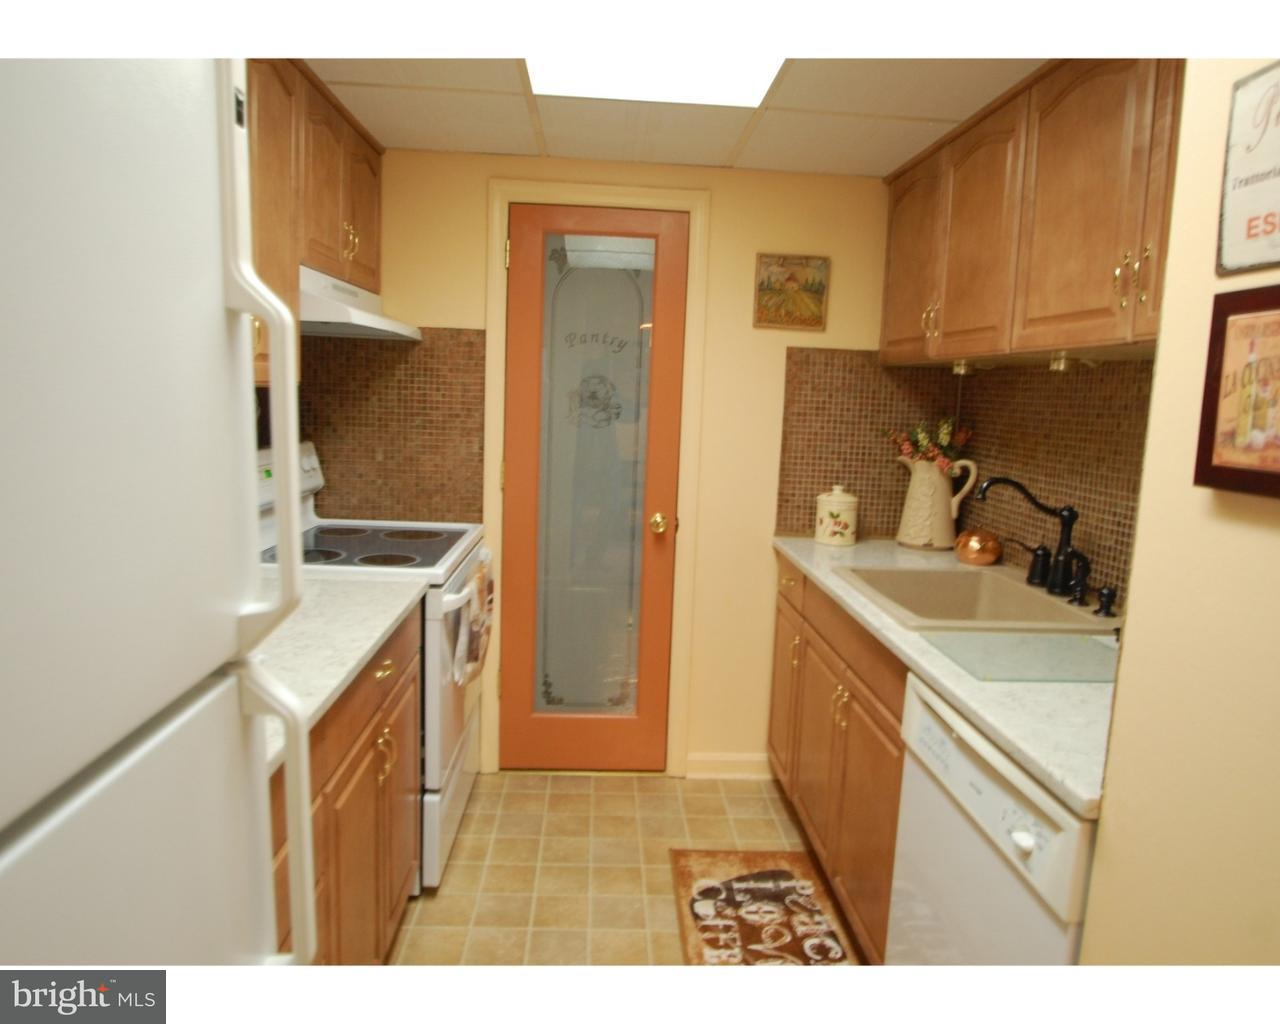 33 W CHESTER PIKE #E15, RIDLEY PARK - Listed at $125,000, RIDLEY PARK